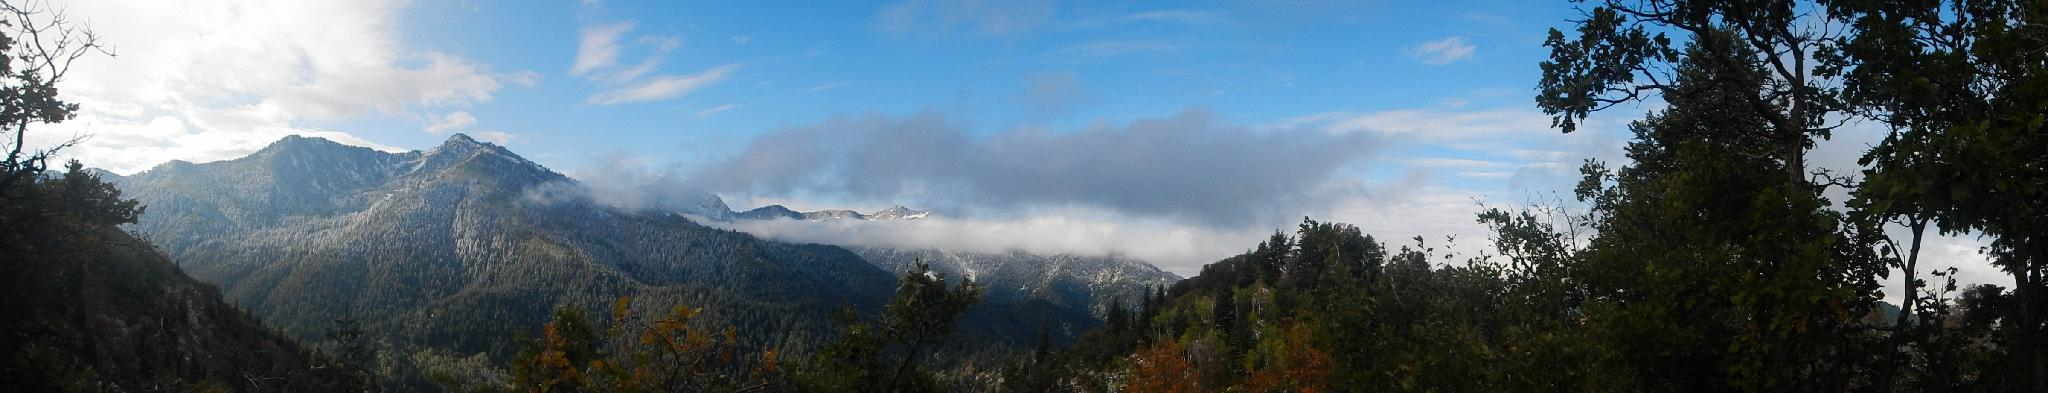 Great panorama of the peaks on the south side of Millcreek Canyon